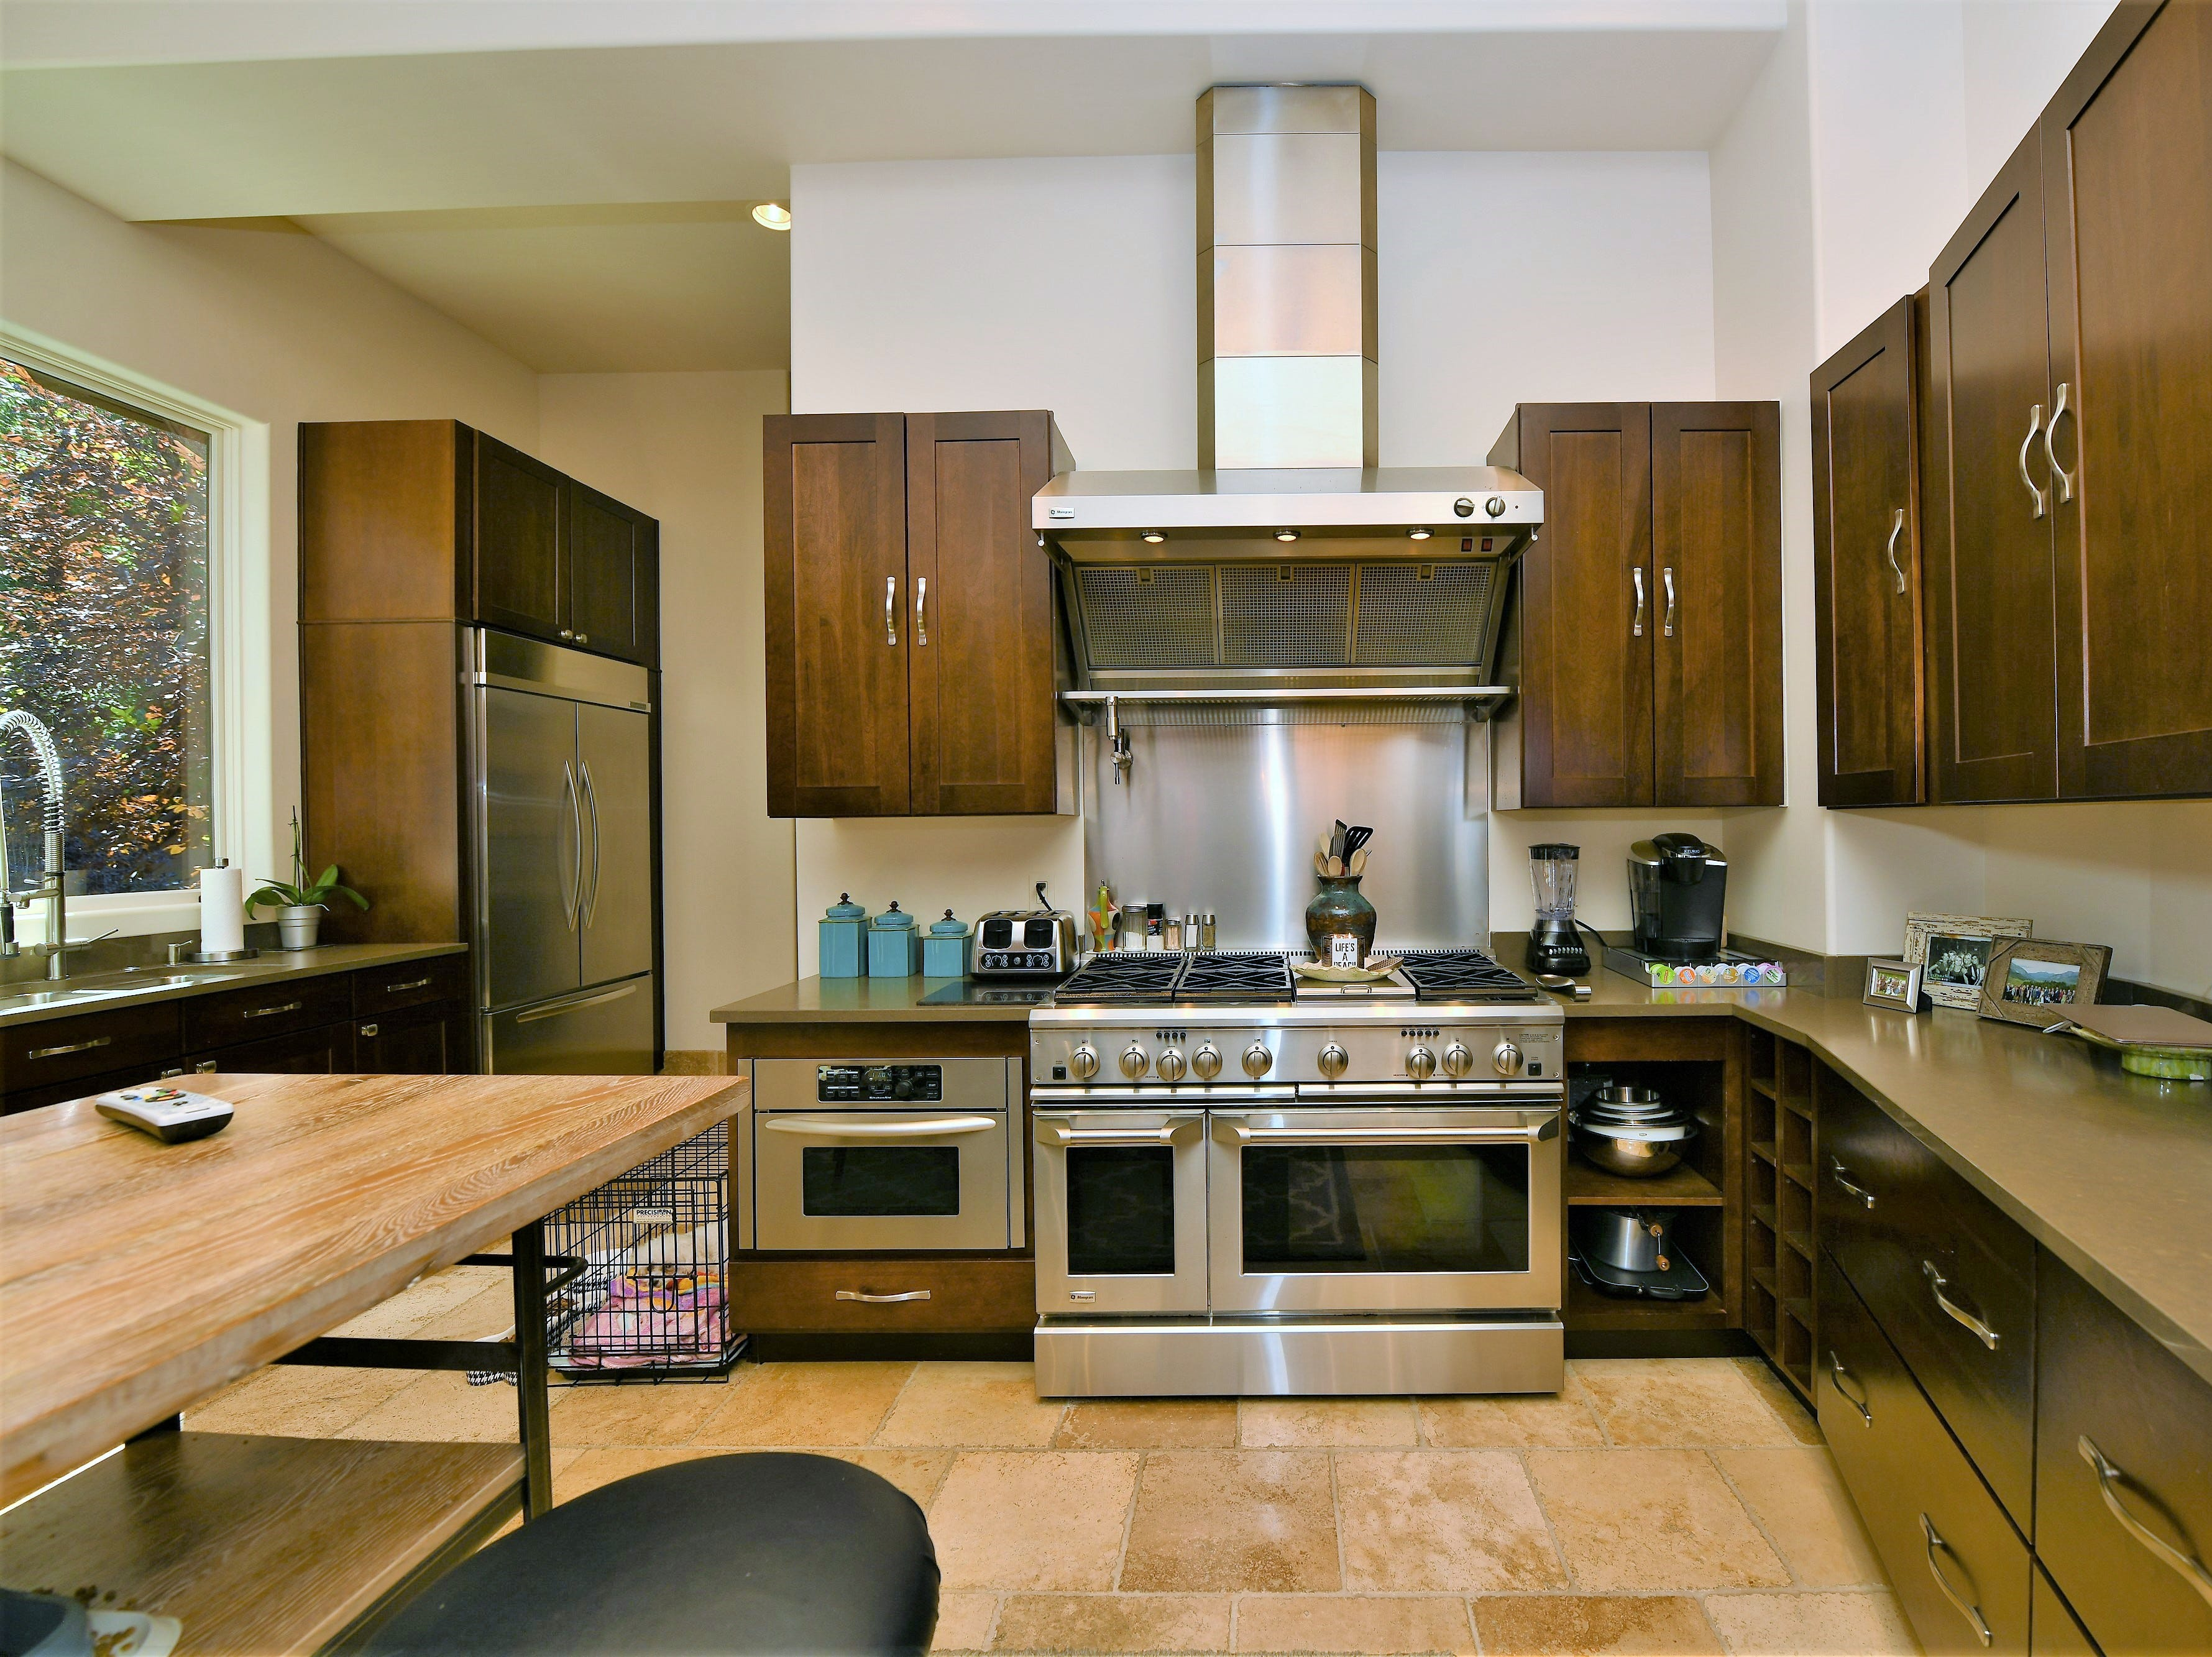 """Behind the main kitchen is a pantry and second """"preparatory"""" kitchen with laundry, which is often used when catering events at the house."""